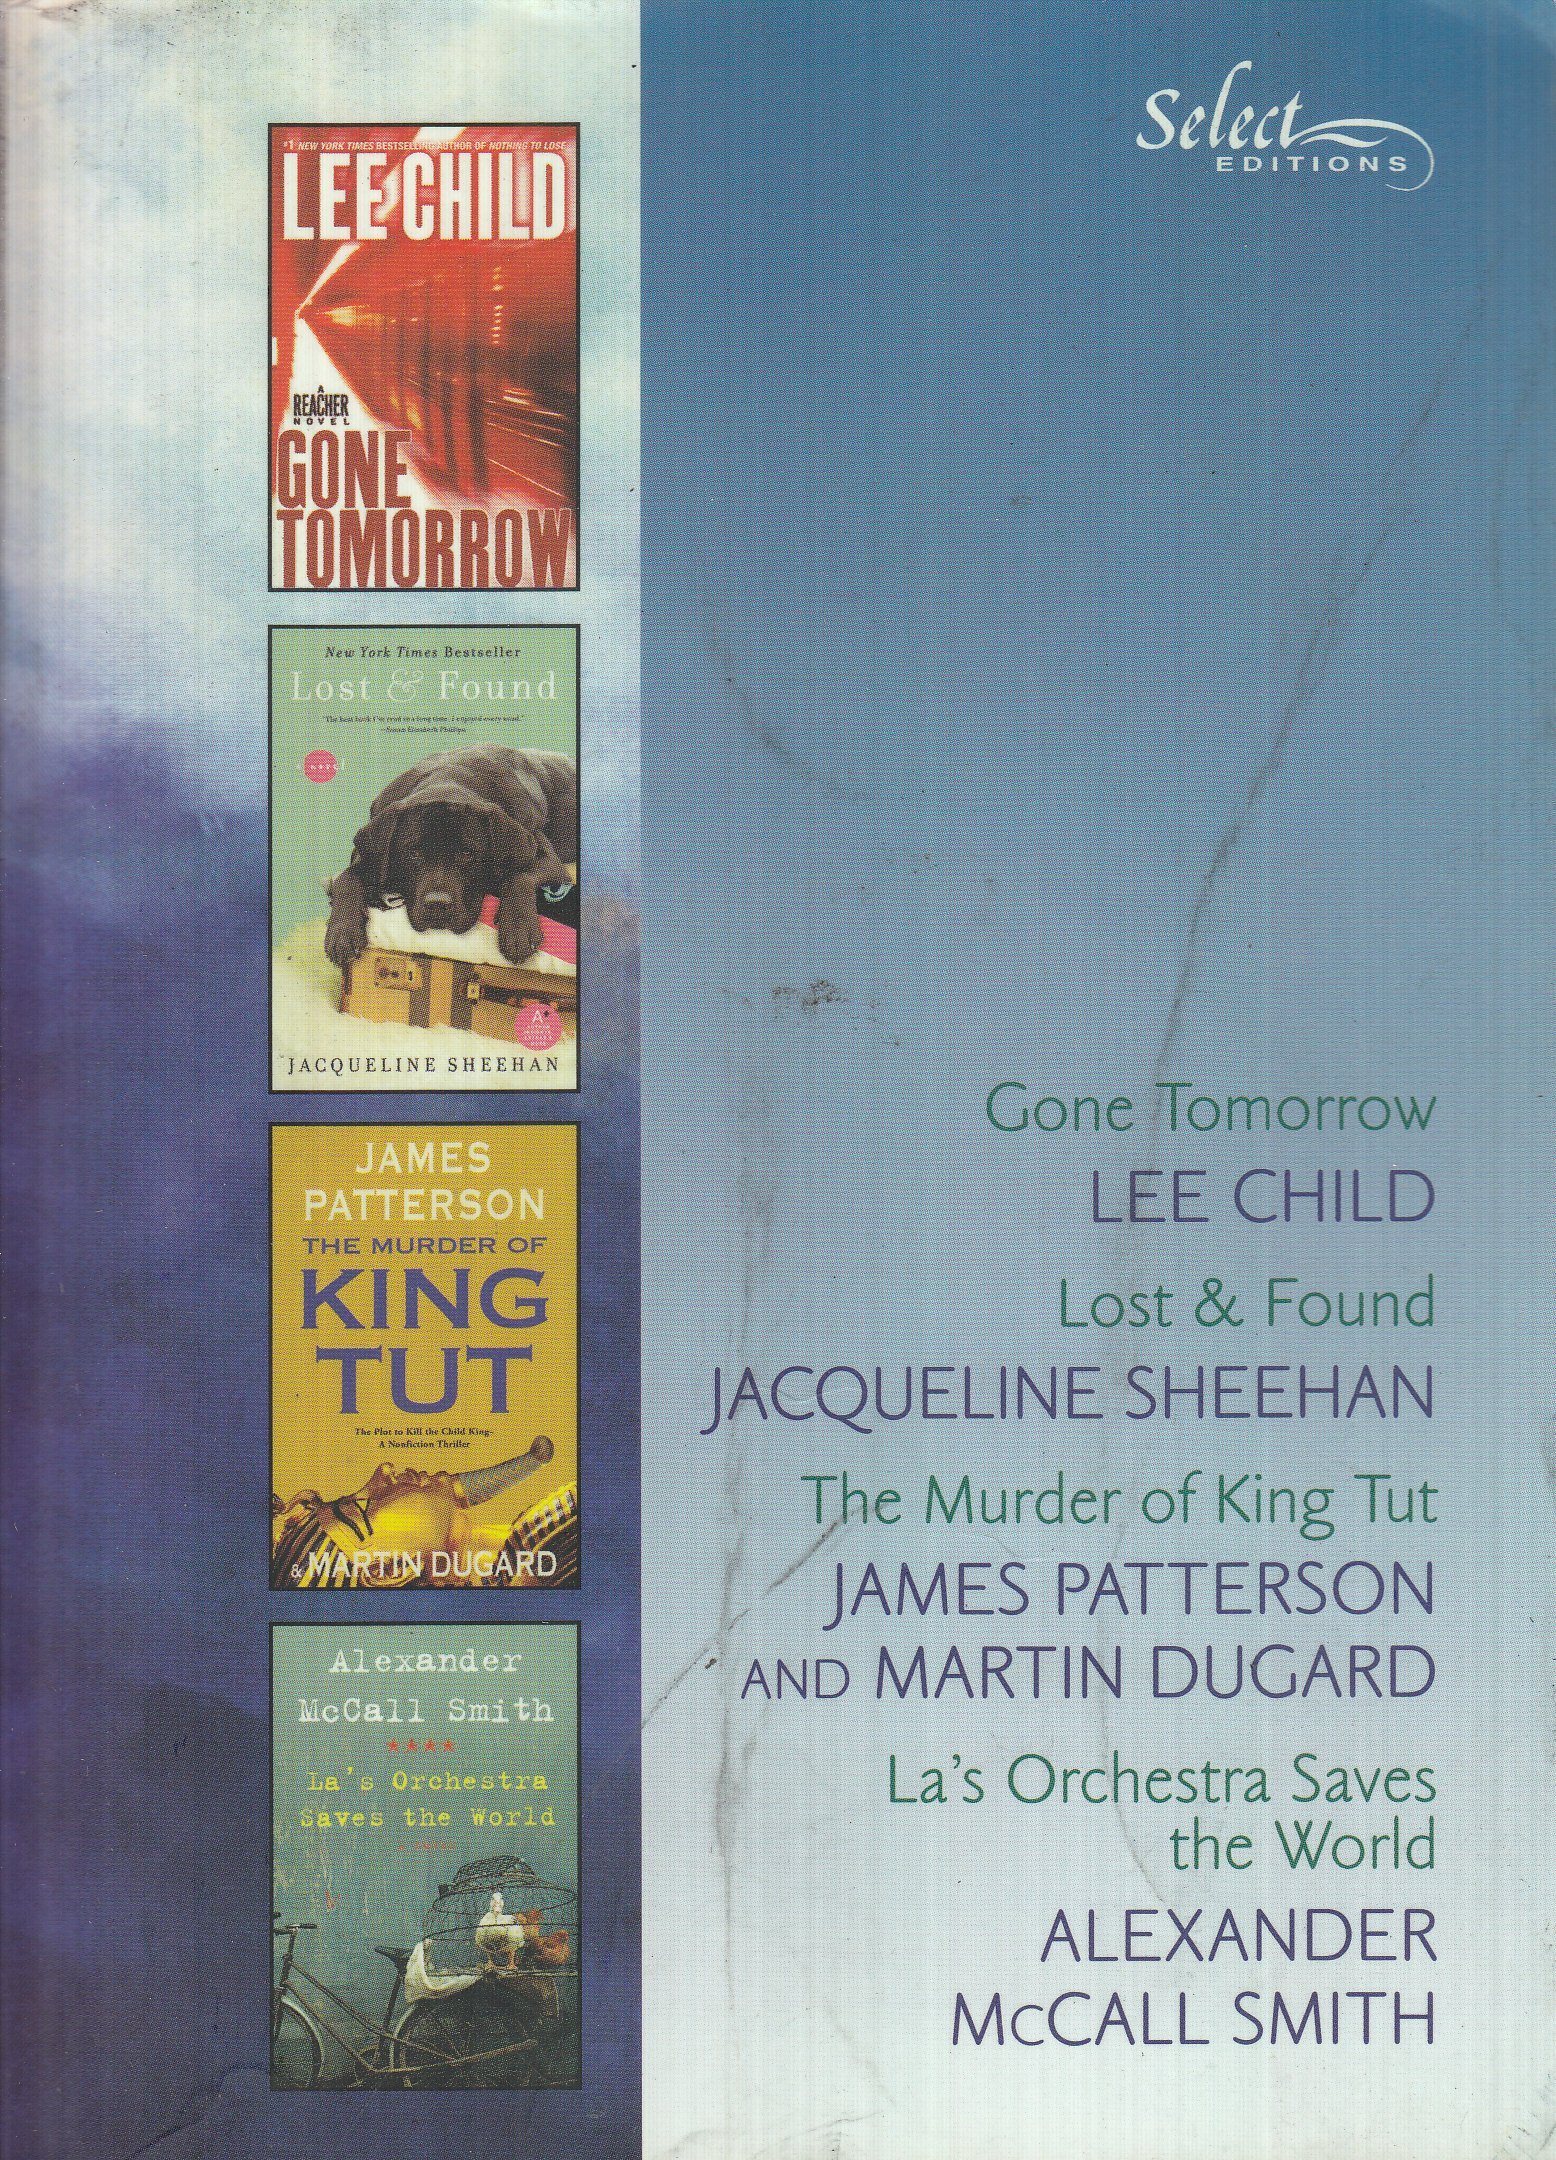 Reader's Digest Select Editions: 2010 Volume 1 (Gone Tomorrow, Lost & Found, The Murder of King Tut, La's Orchestra Saves the World) PDF